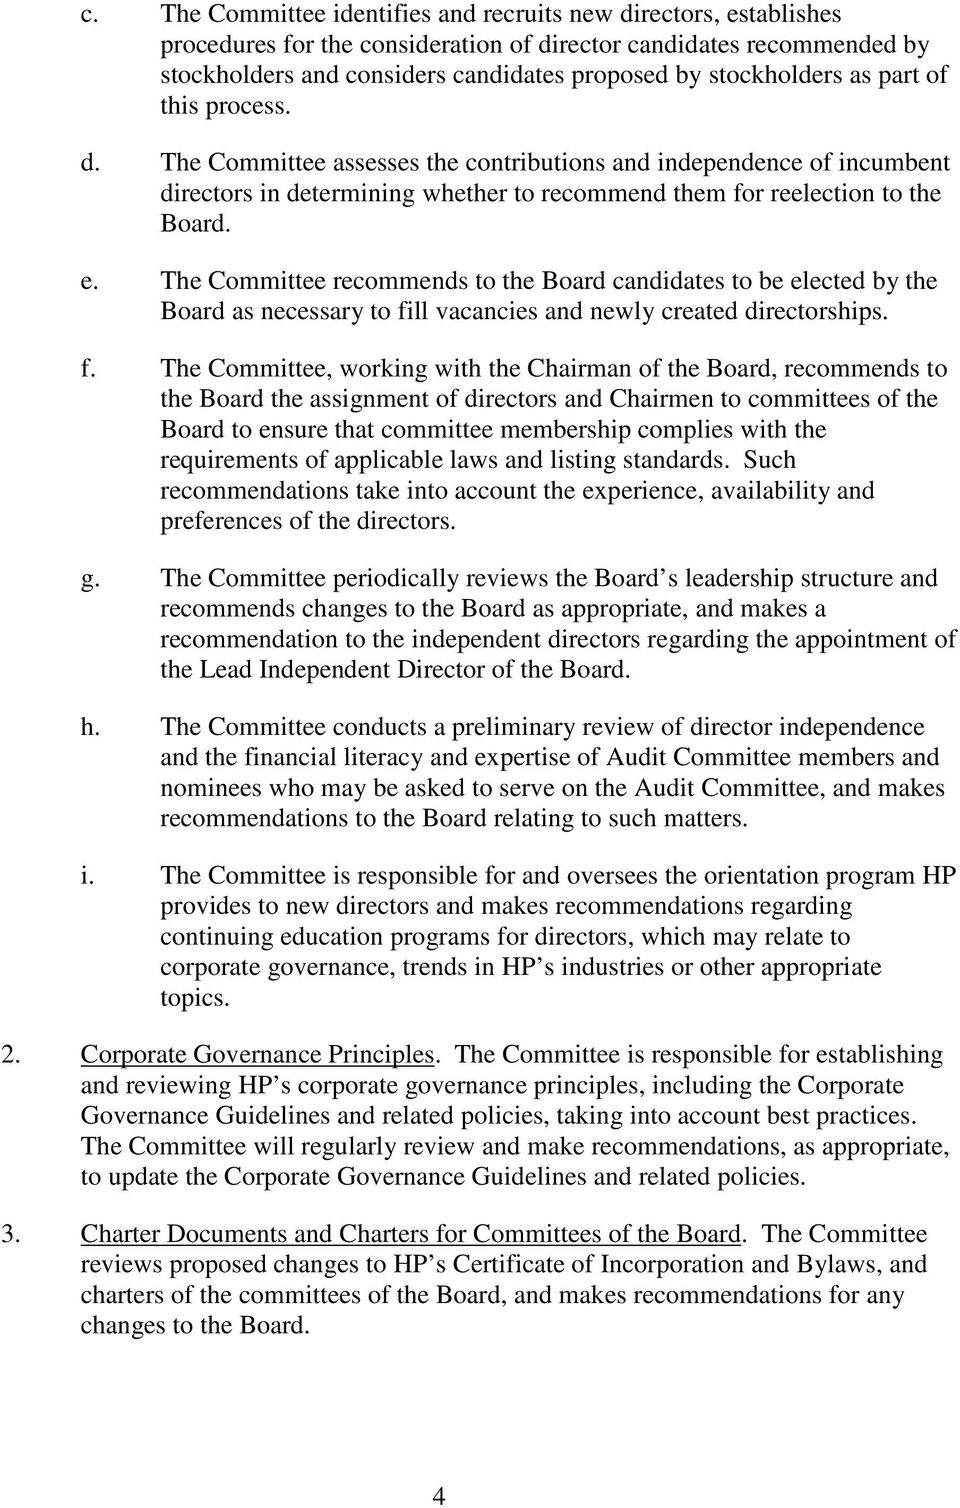 The Committee recommends to the Board candidates to be elected by the Board as necessary to fi